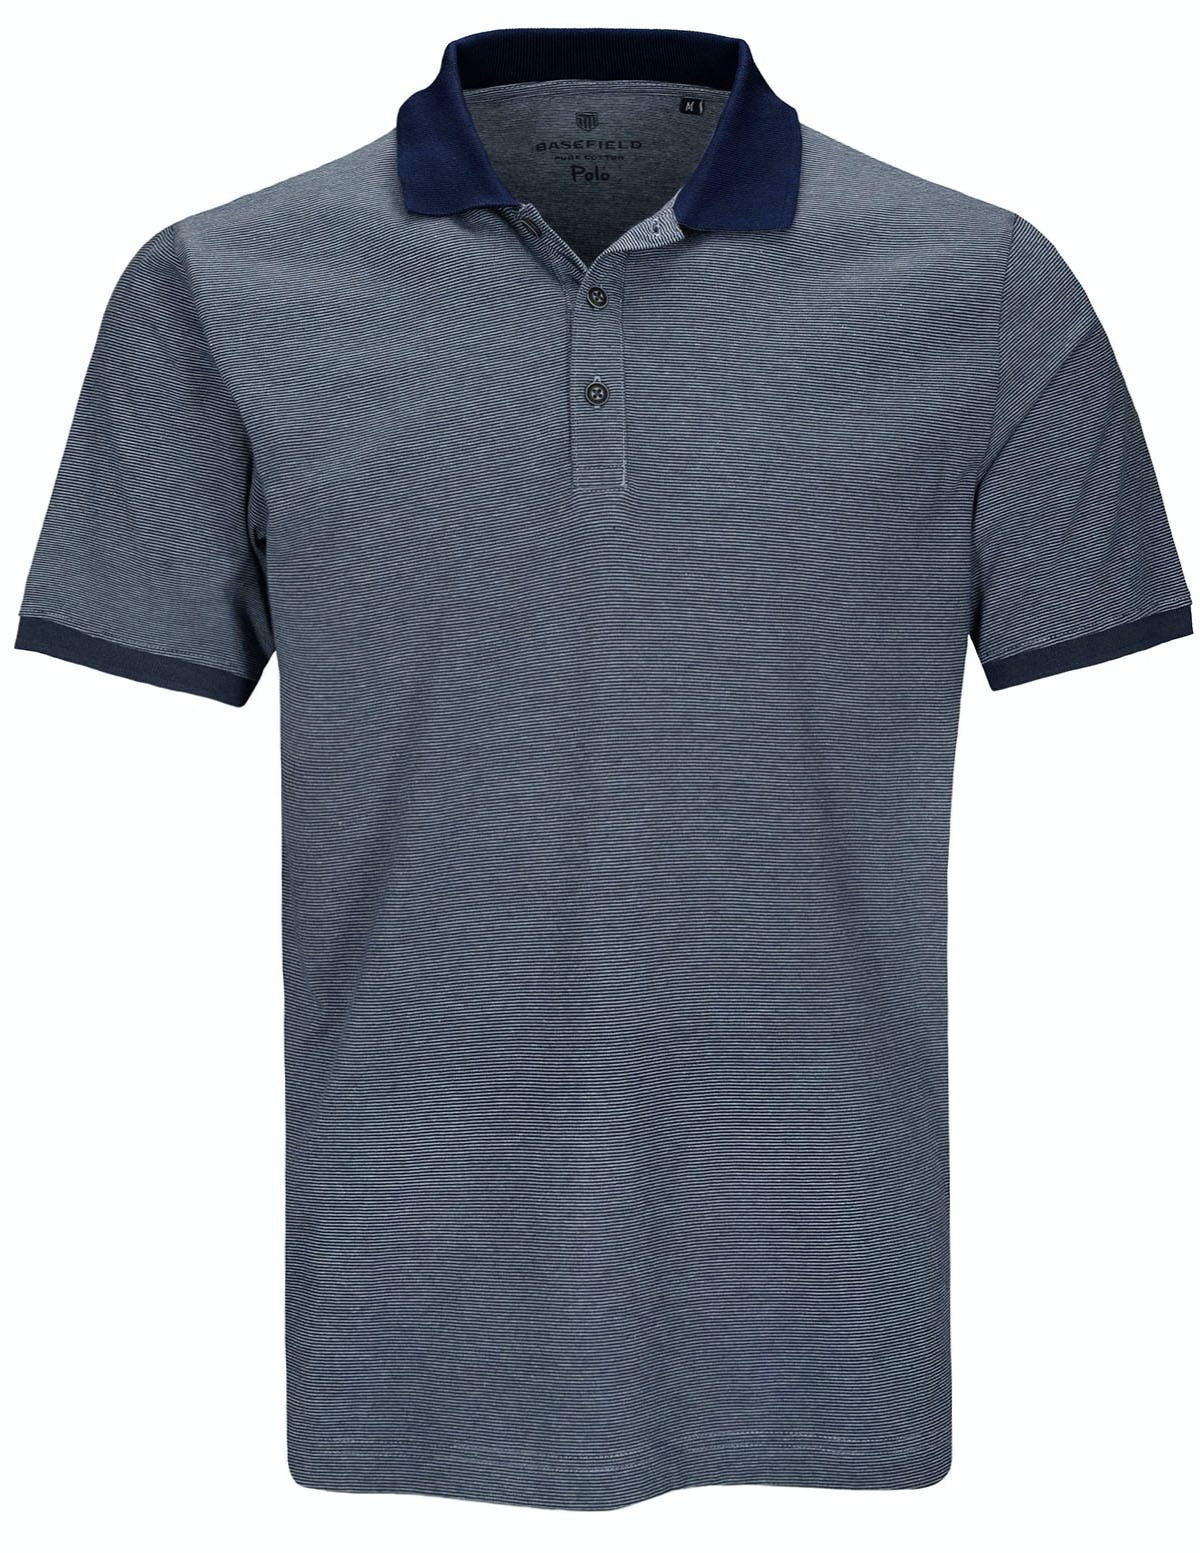 219012992-blue-navy__polo__all